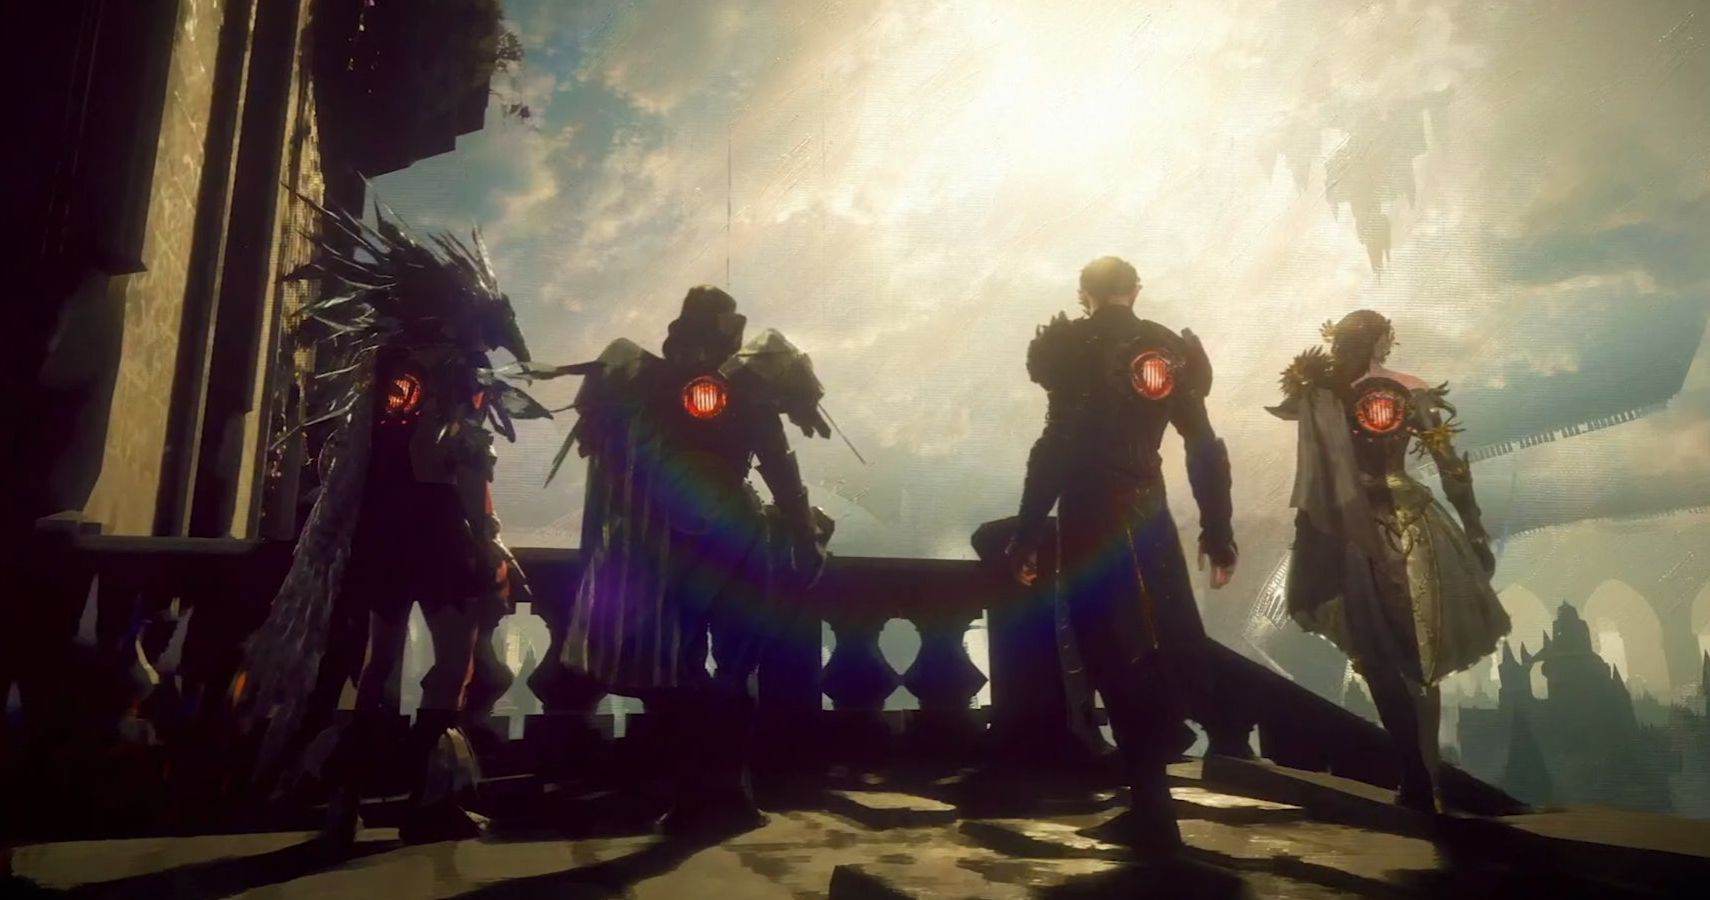 Square Enix Reveals Extended Look At Babylon's Fall From PlatinumGames